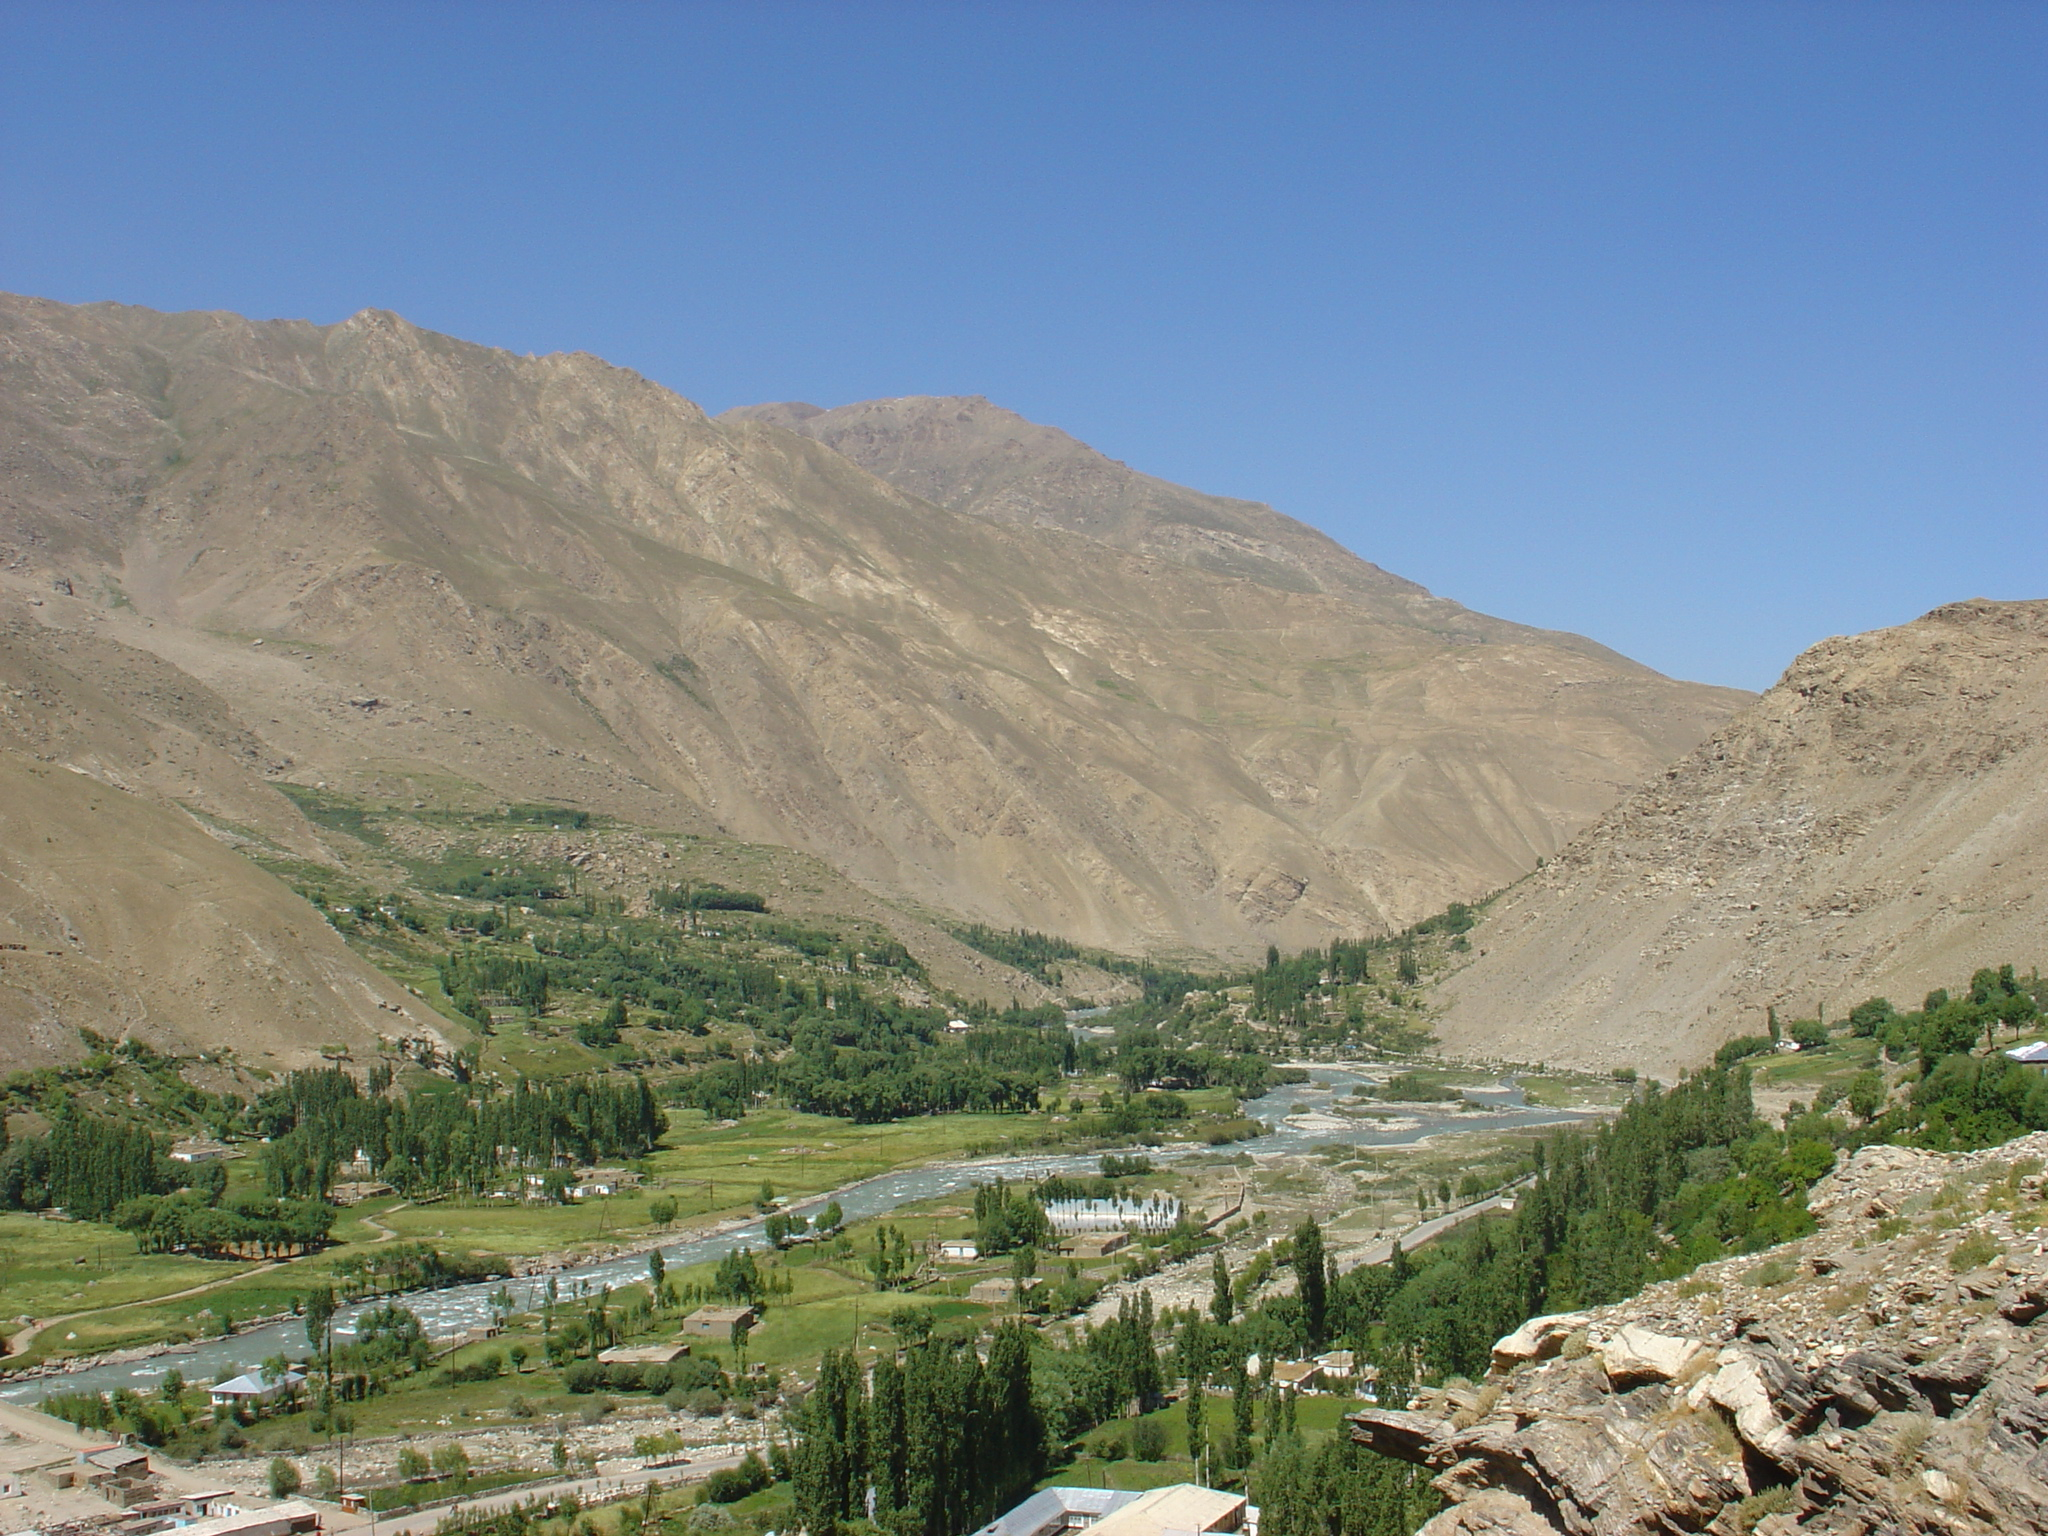 River in valley surrounded by mountains